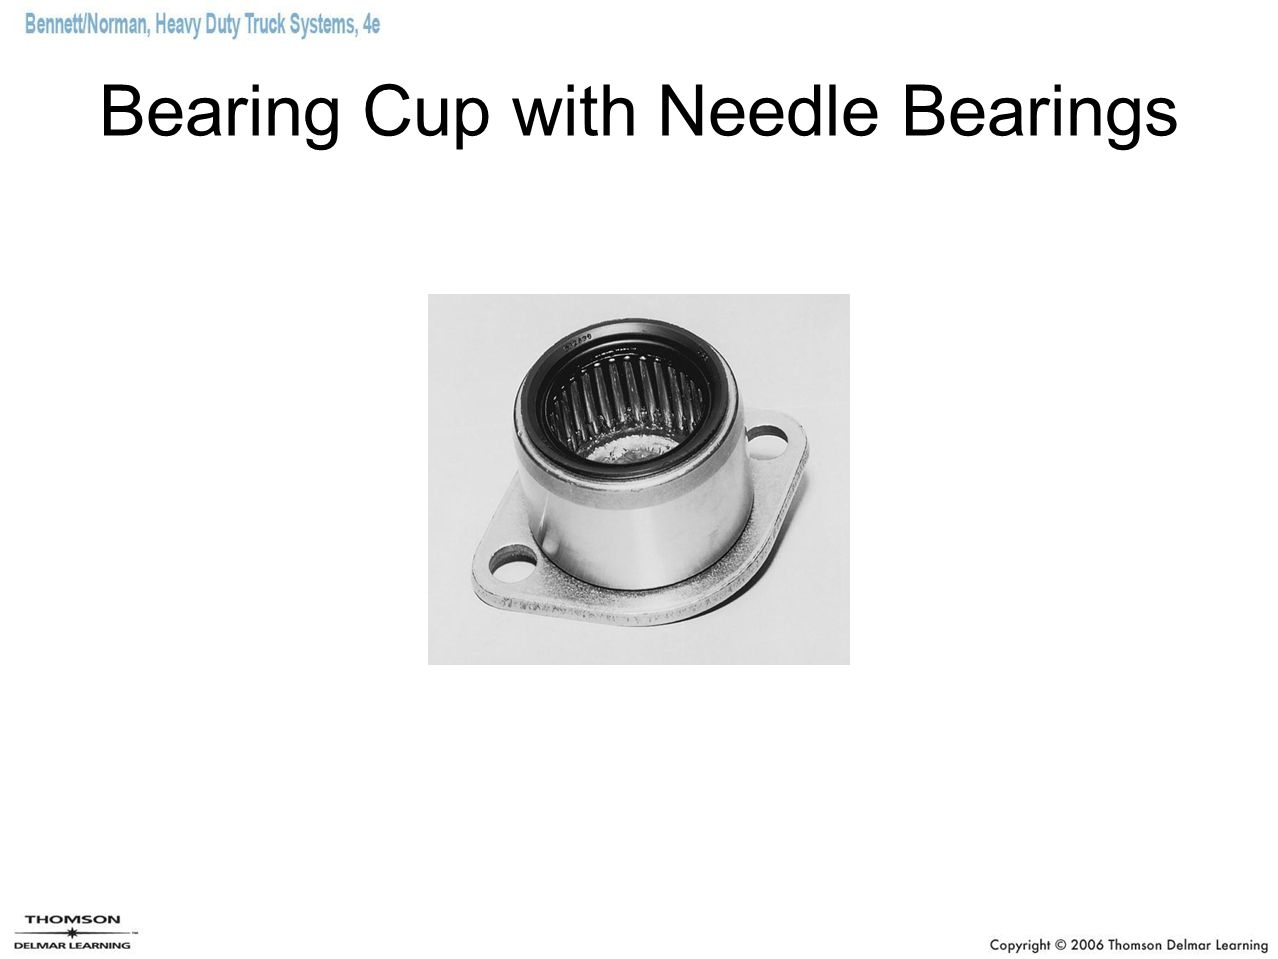 Bearing Cup with Needle Bearings